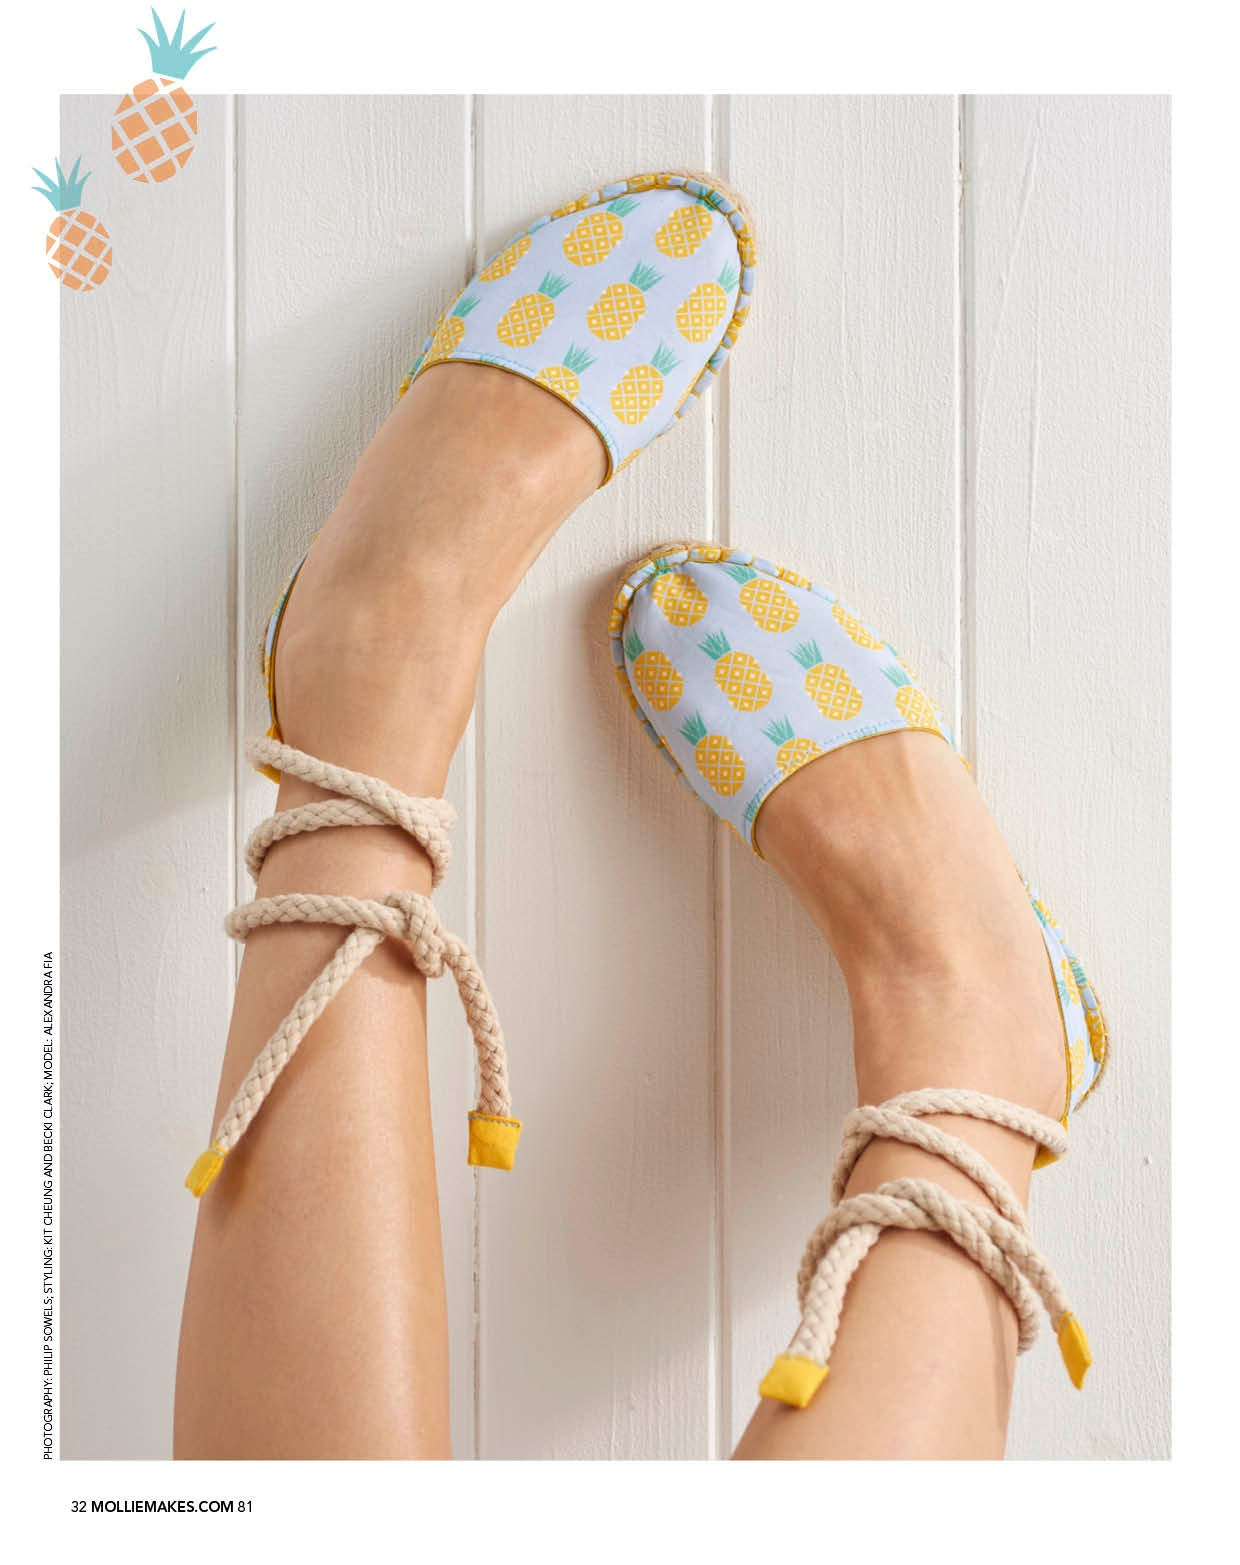 Suzie London Strappy Pineapple Espadrilles as seen in issue 81 of Mollie Makes magazine